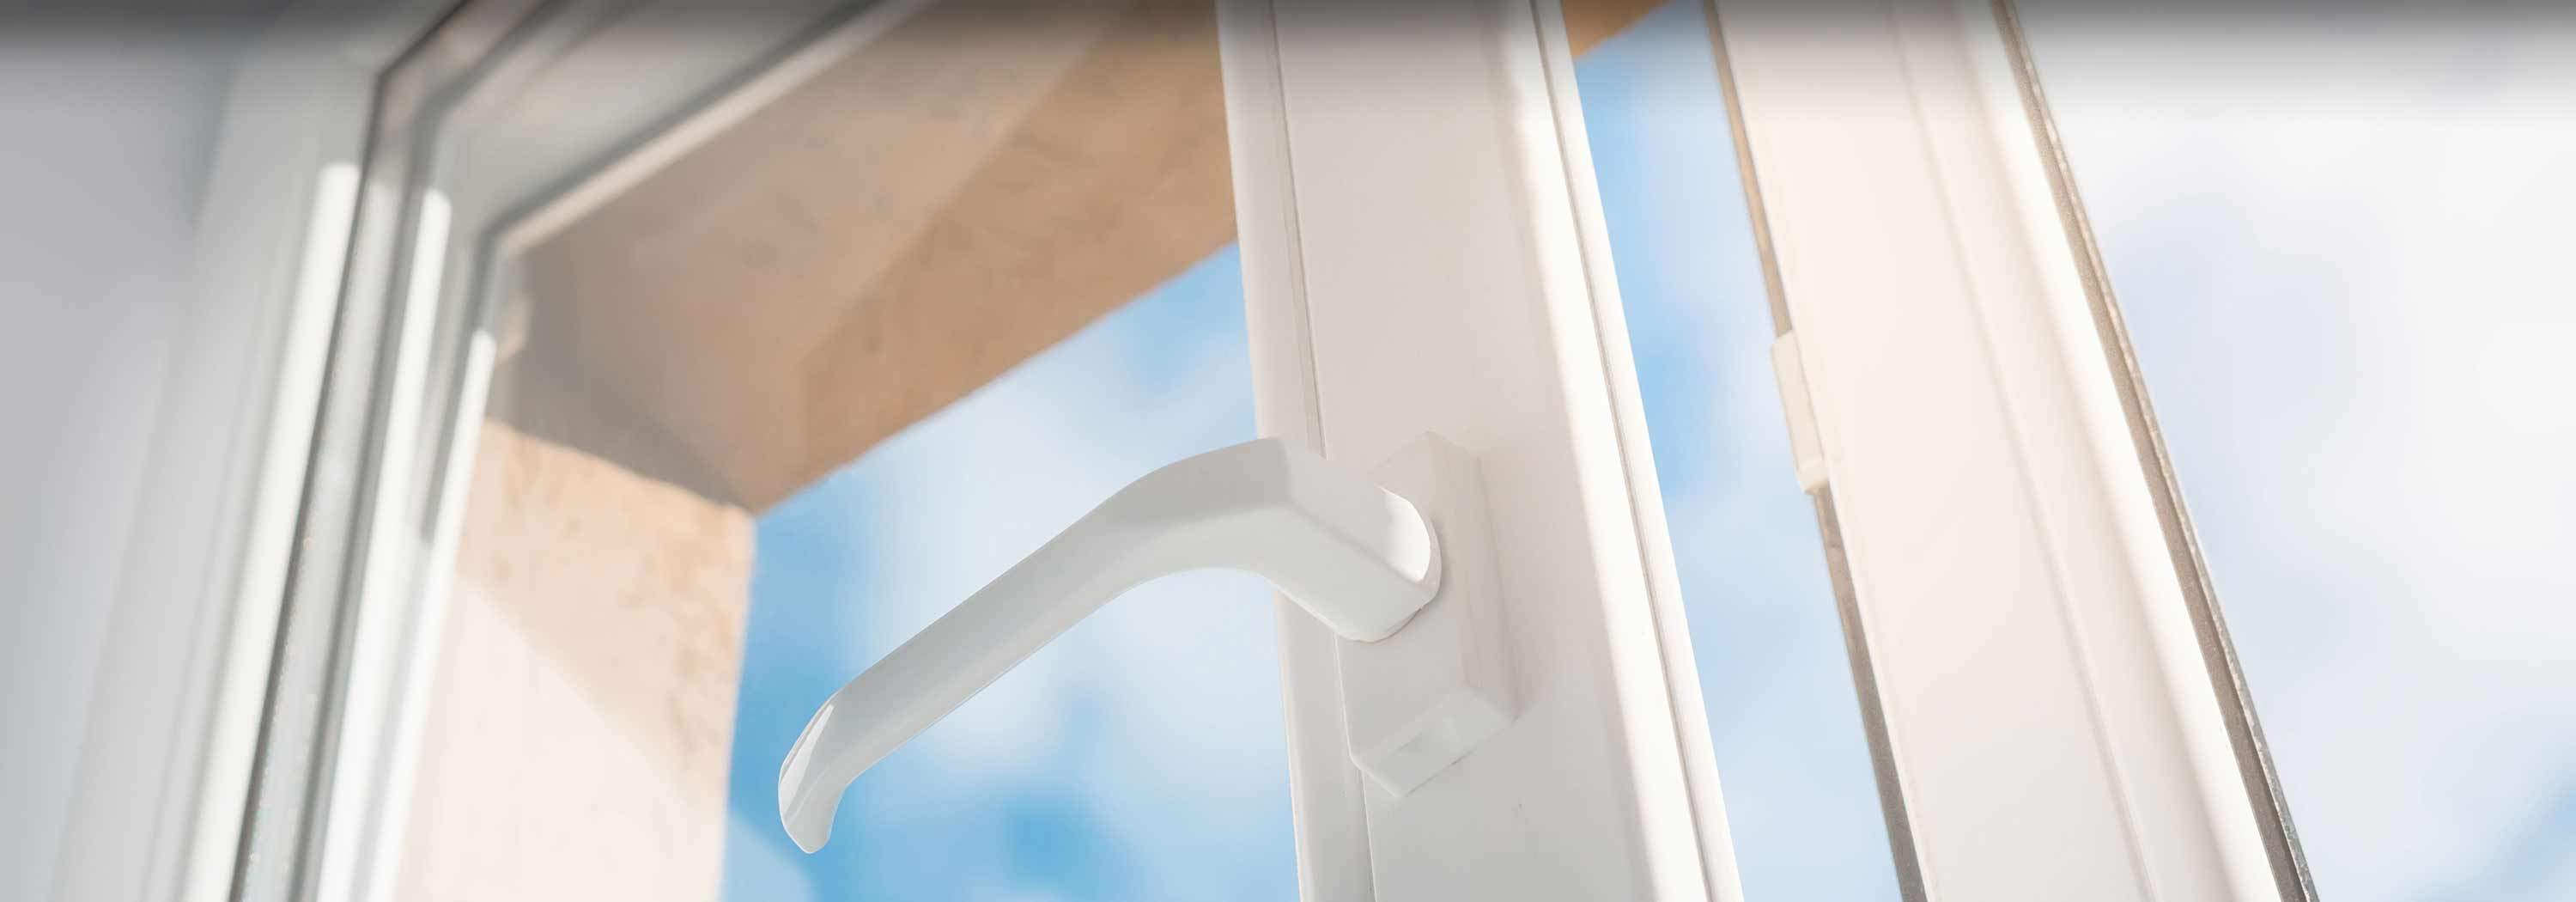 wholesale dealer df8f5 88b5e How Much Do Double Glazed Windows Cost in 2019? | MyBuilder.com